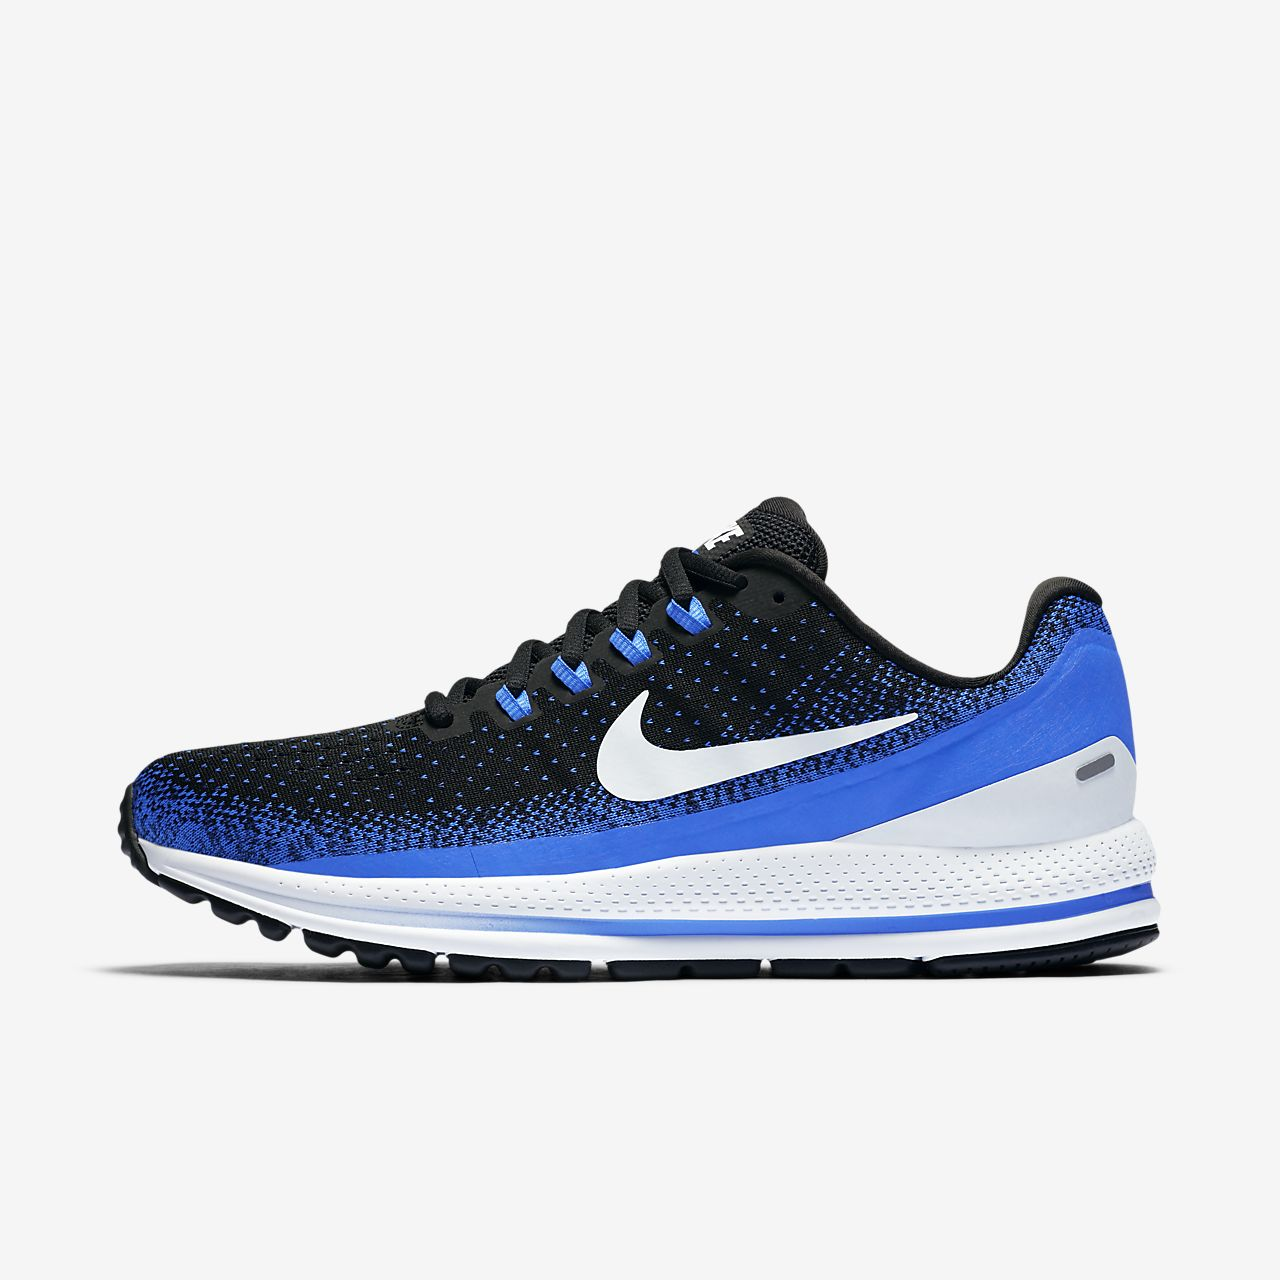 cb6868adce68 Nike Air Zoom Vomero 13 Men s Running Shoe. Nike.com IN